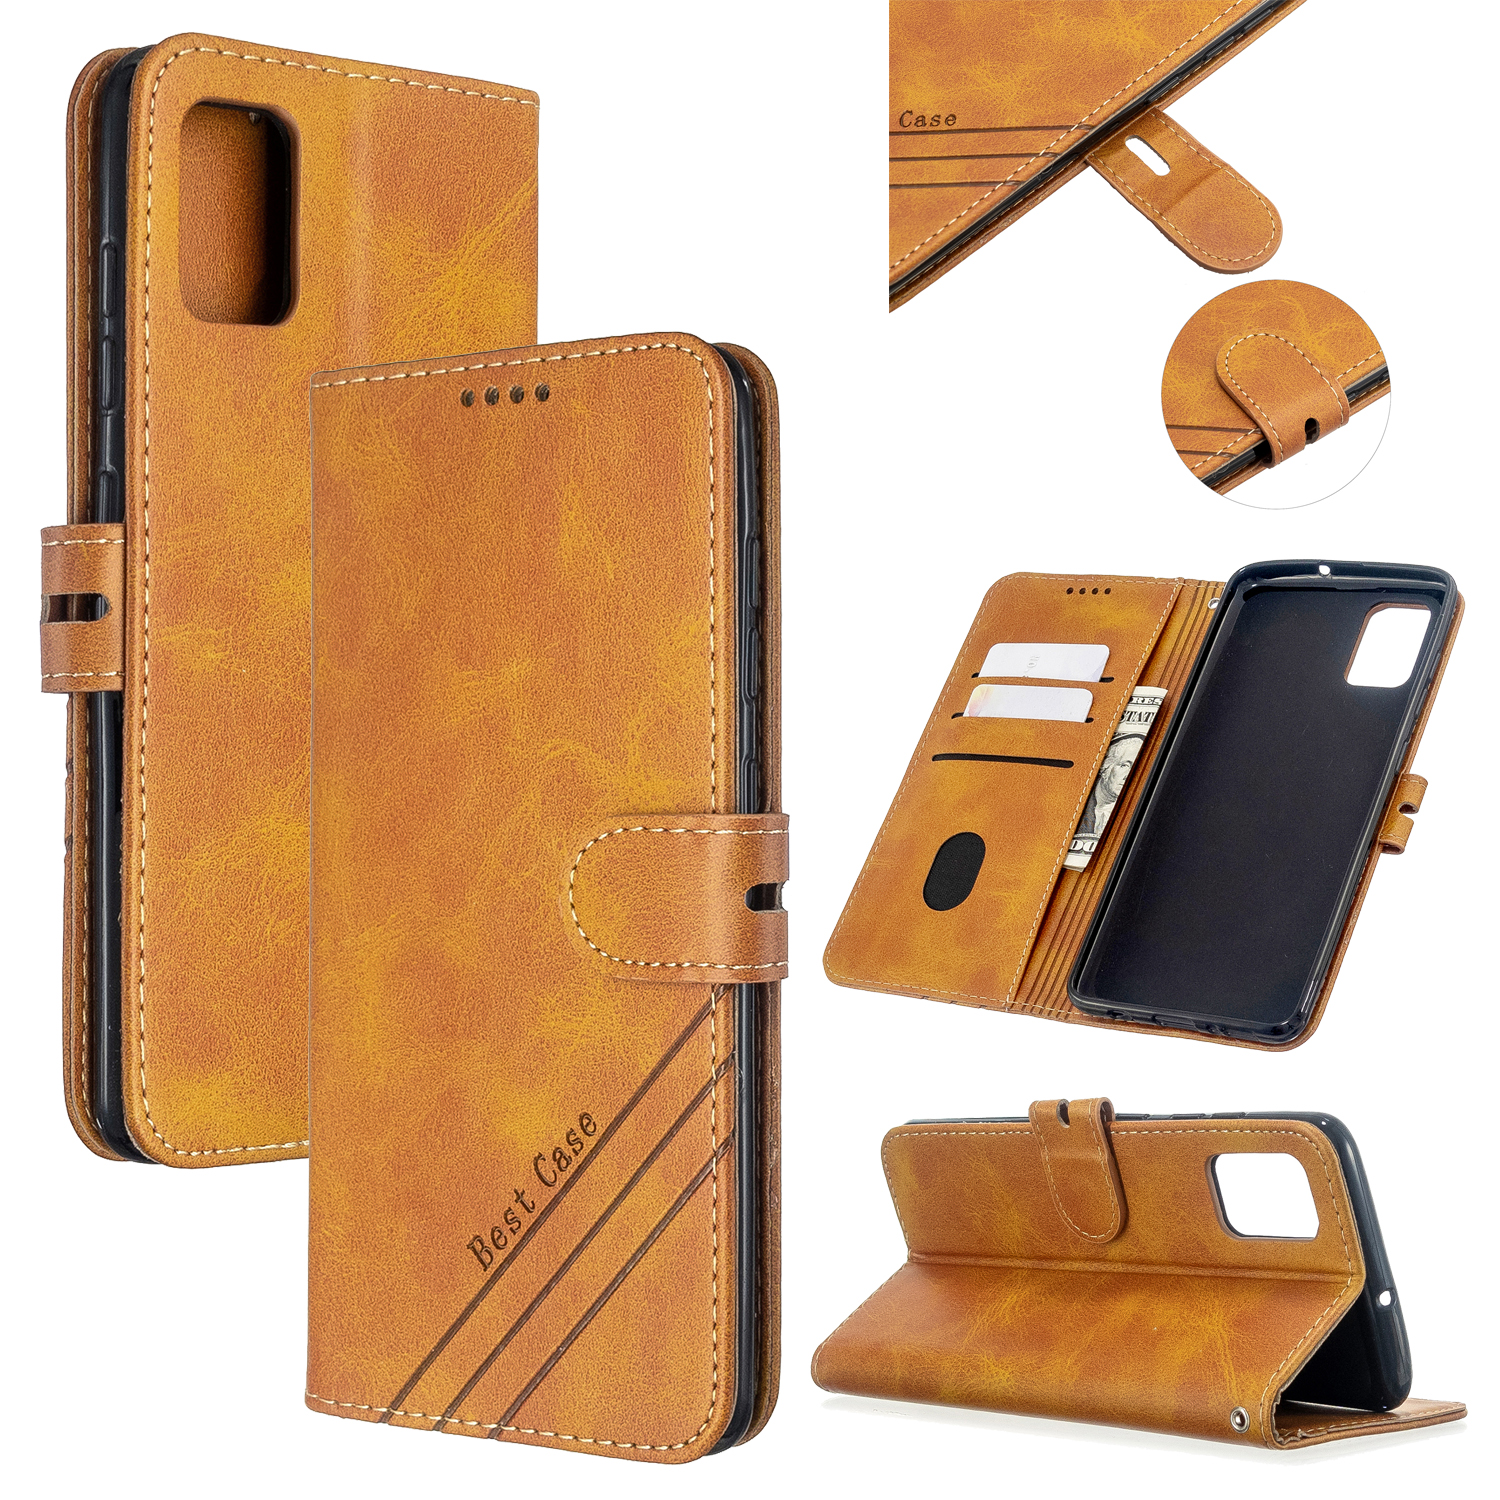 For Samsung A51/A71/M30S Case Soft Leather Cover with Denim Texture Precise Cutouts Wallet Design Buckle Closure Smartphone Shell  yellow